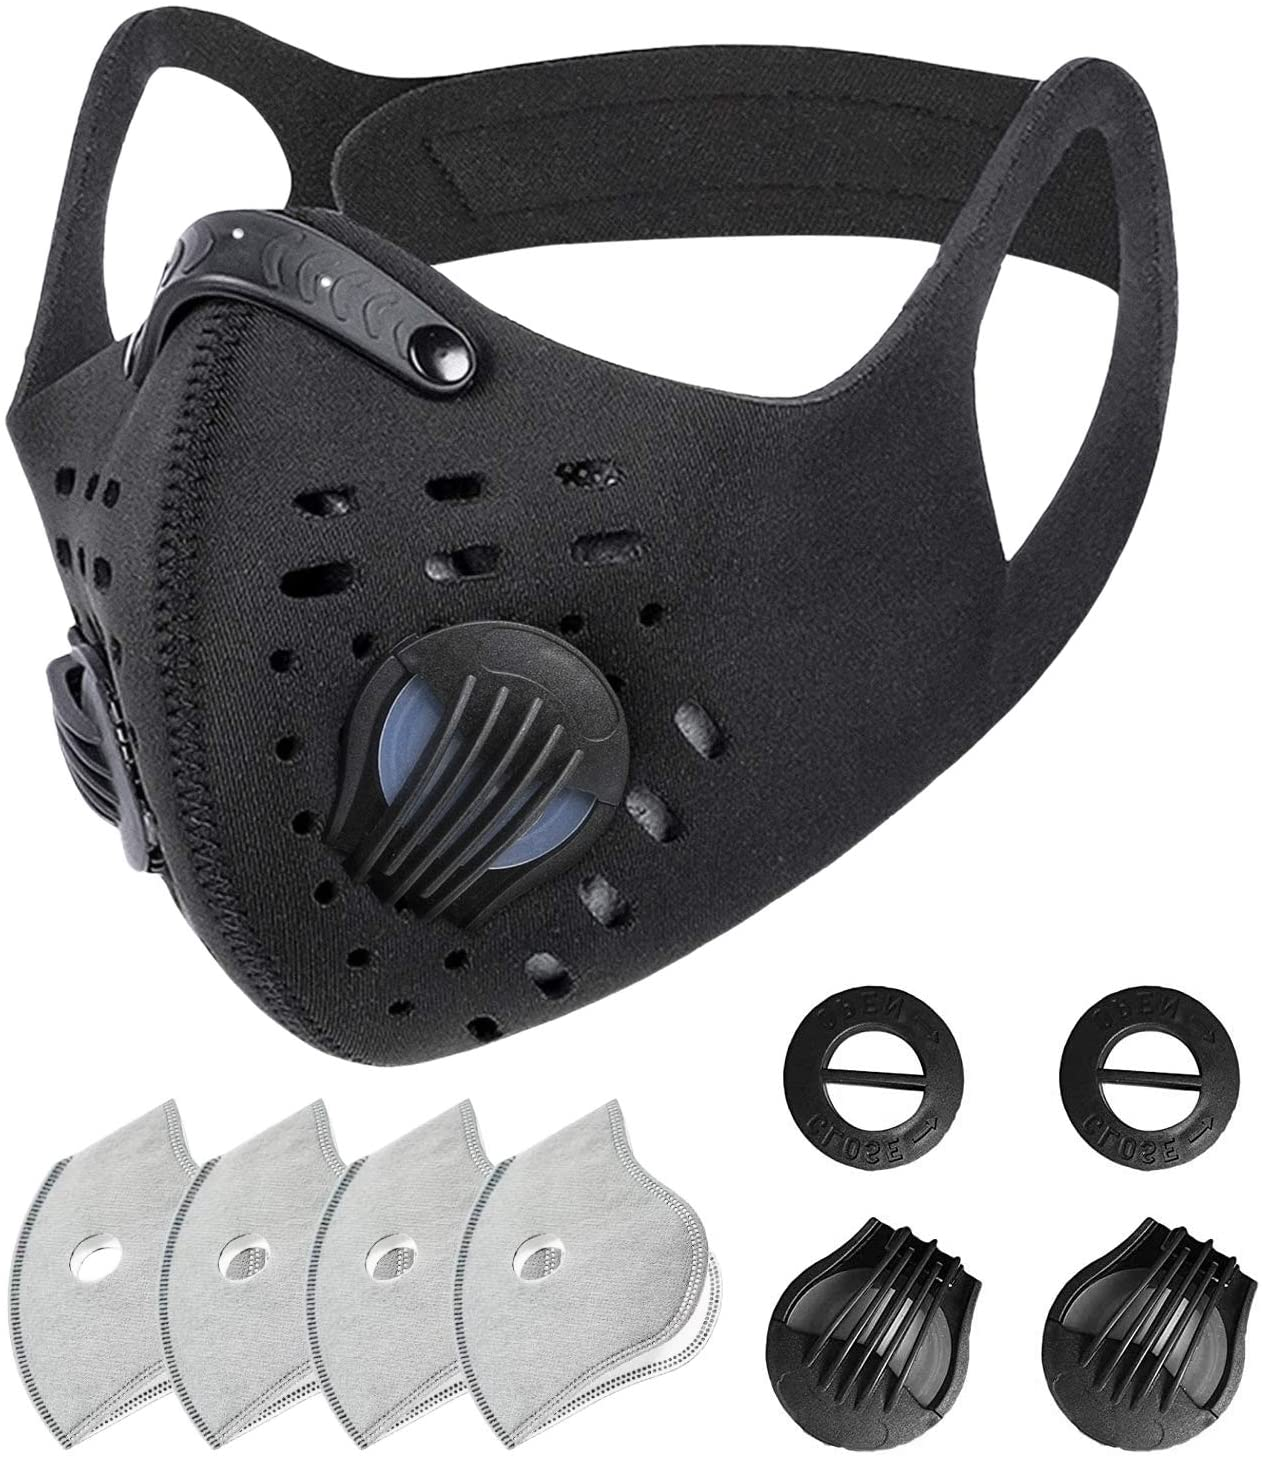 SKYLMW Face Mask Outdoor,Breathable Washable Dust Reusable Face Cover with 2 Replaceable Valves and 4 Replaceable Filters,for Workout Training Athletic Excersize Exercise Cycling Running Cover